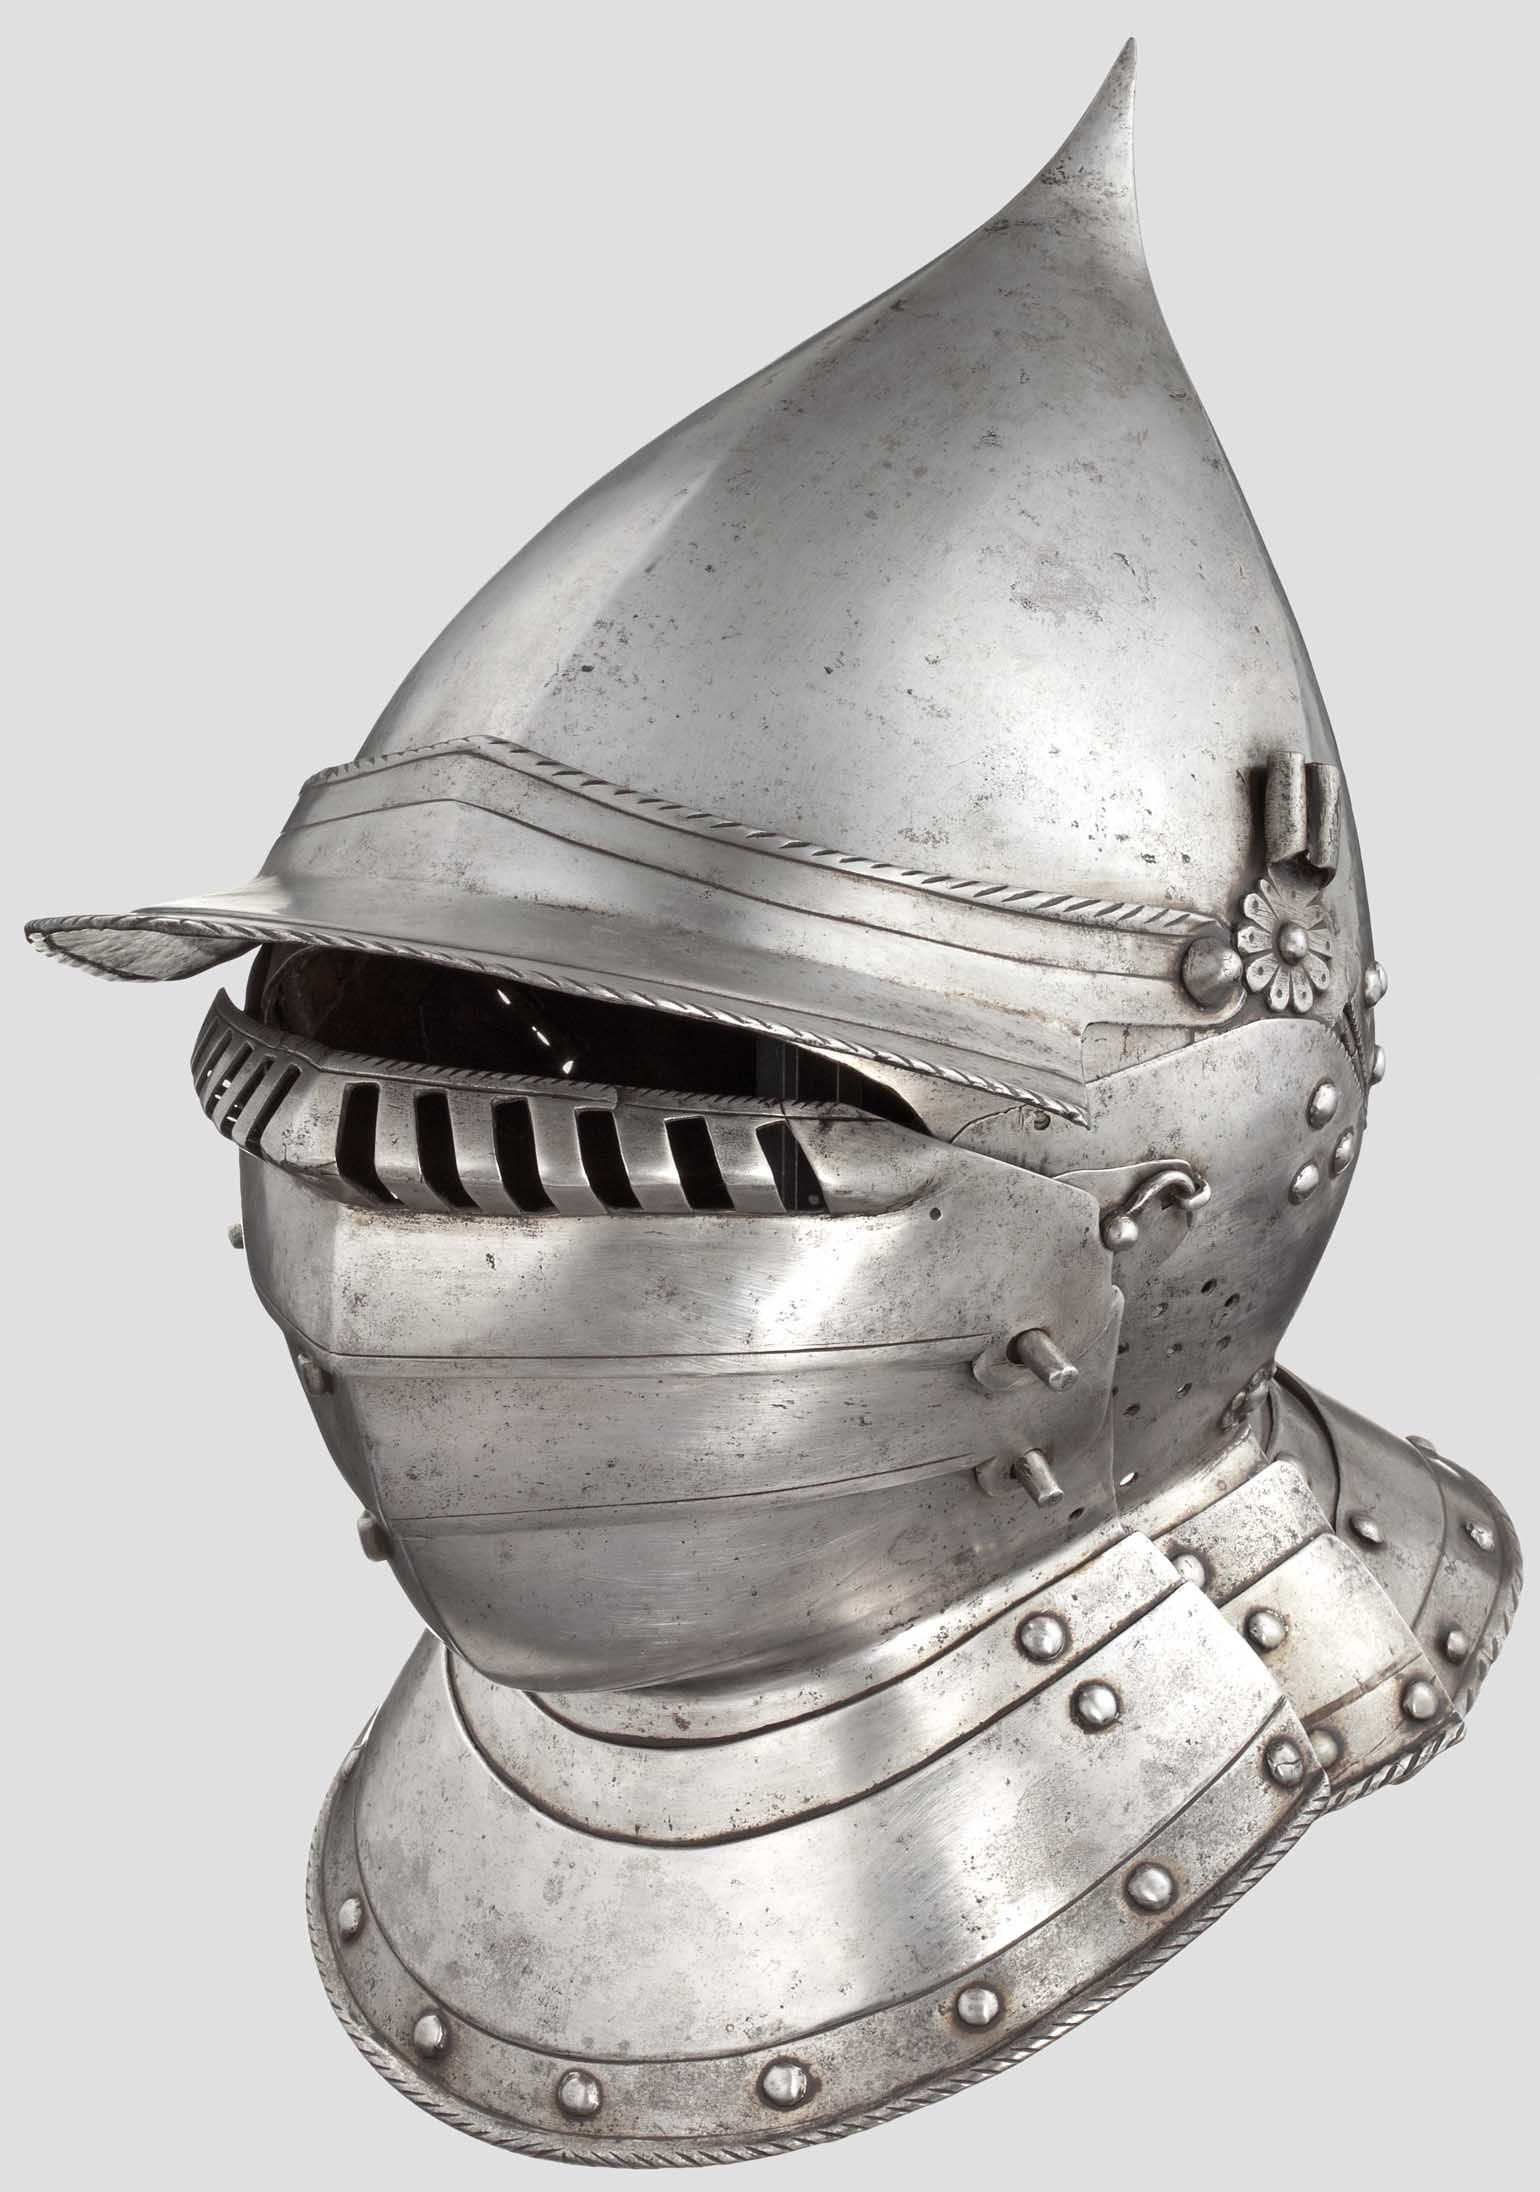 A South German burgonet with pivoted bevor, probably from Augsburg, circa 1550/60 http://www.hermann-historica.de/auktion/images67_max/80772_c.jpg